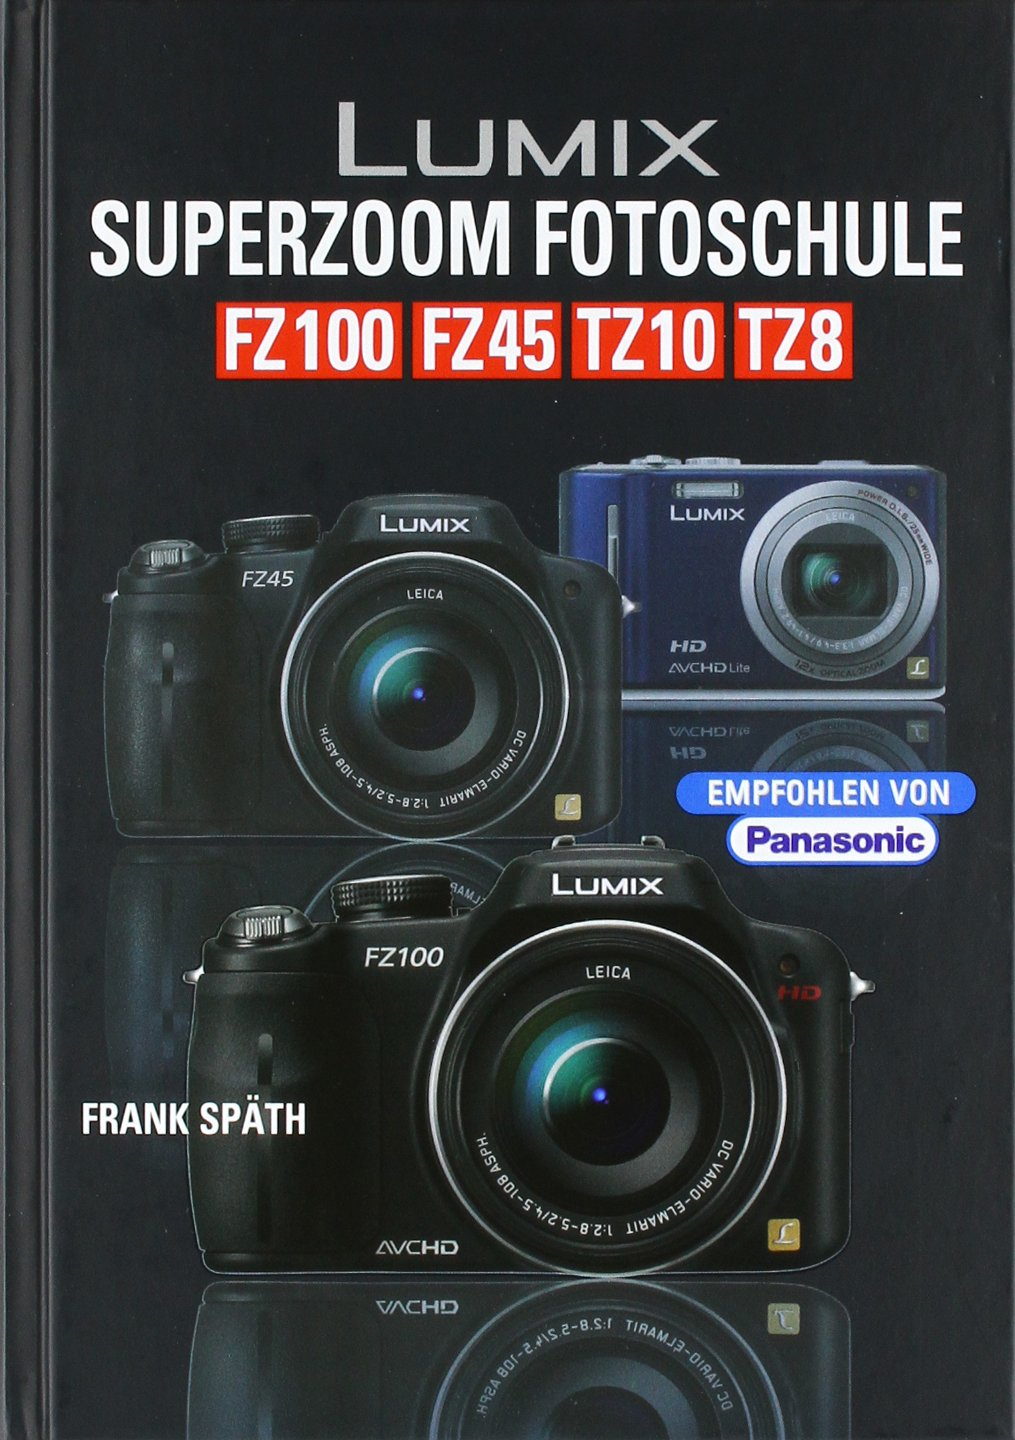 Lumix Superzoom Fotoschule: FZ 100/FZ 45/TZ 10/TZ 8